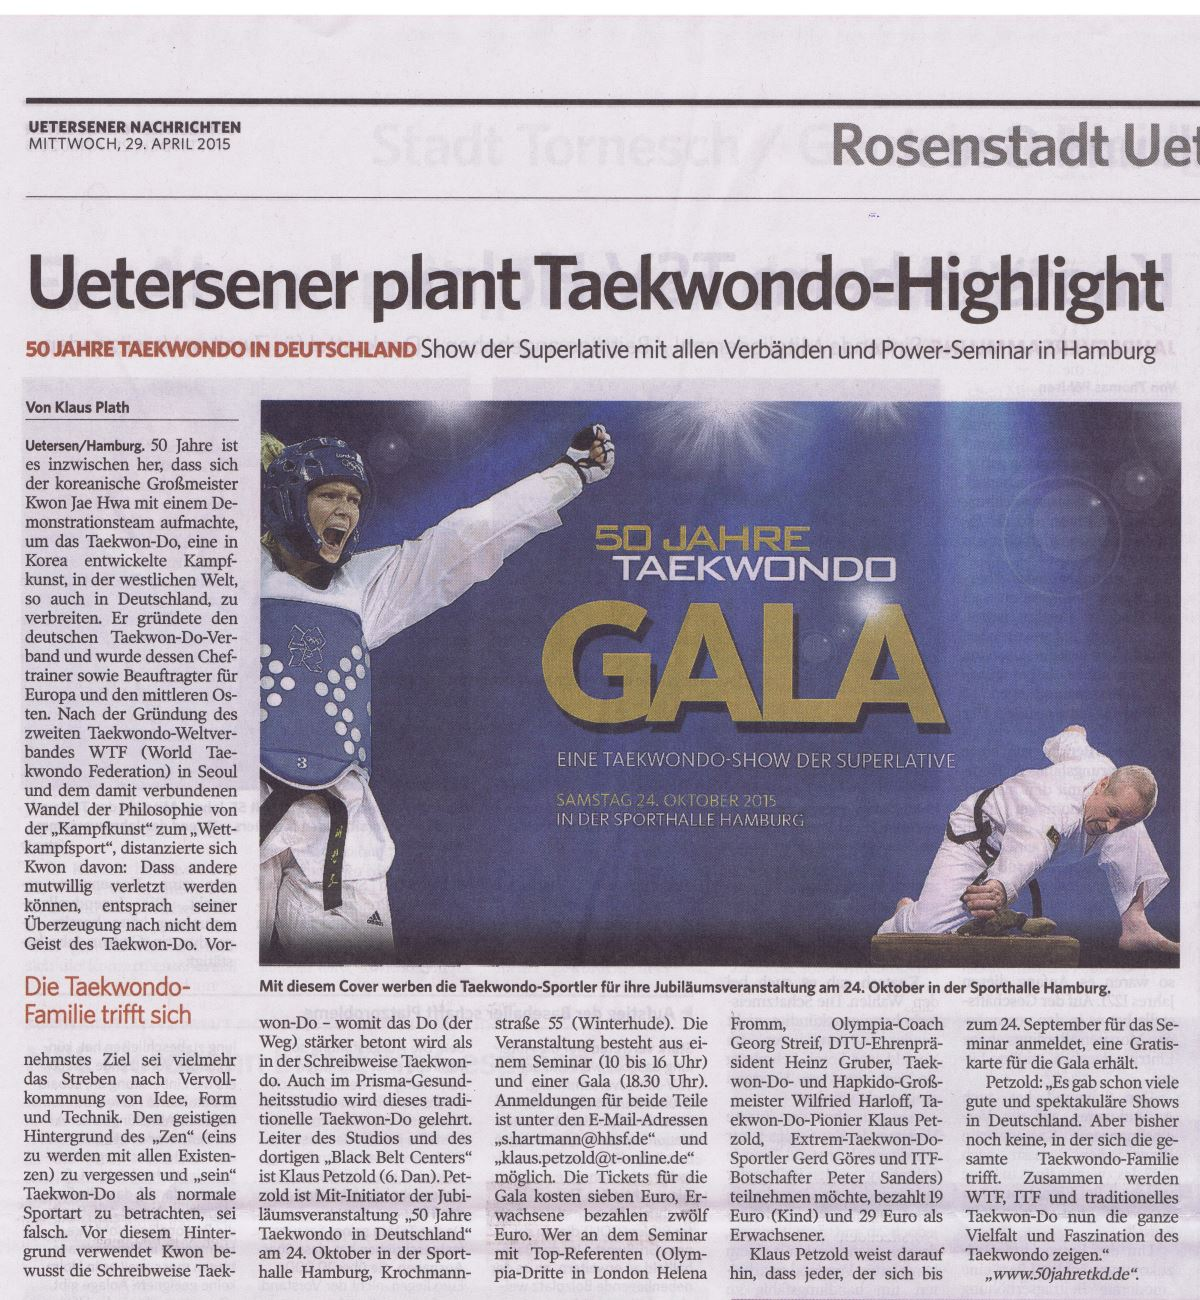 Uetersener plant Taekwondo-Highlight